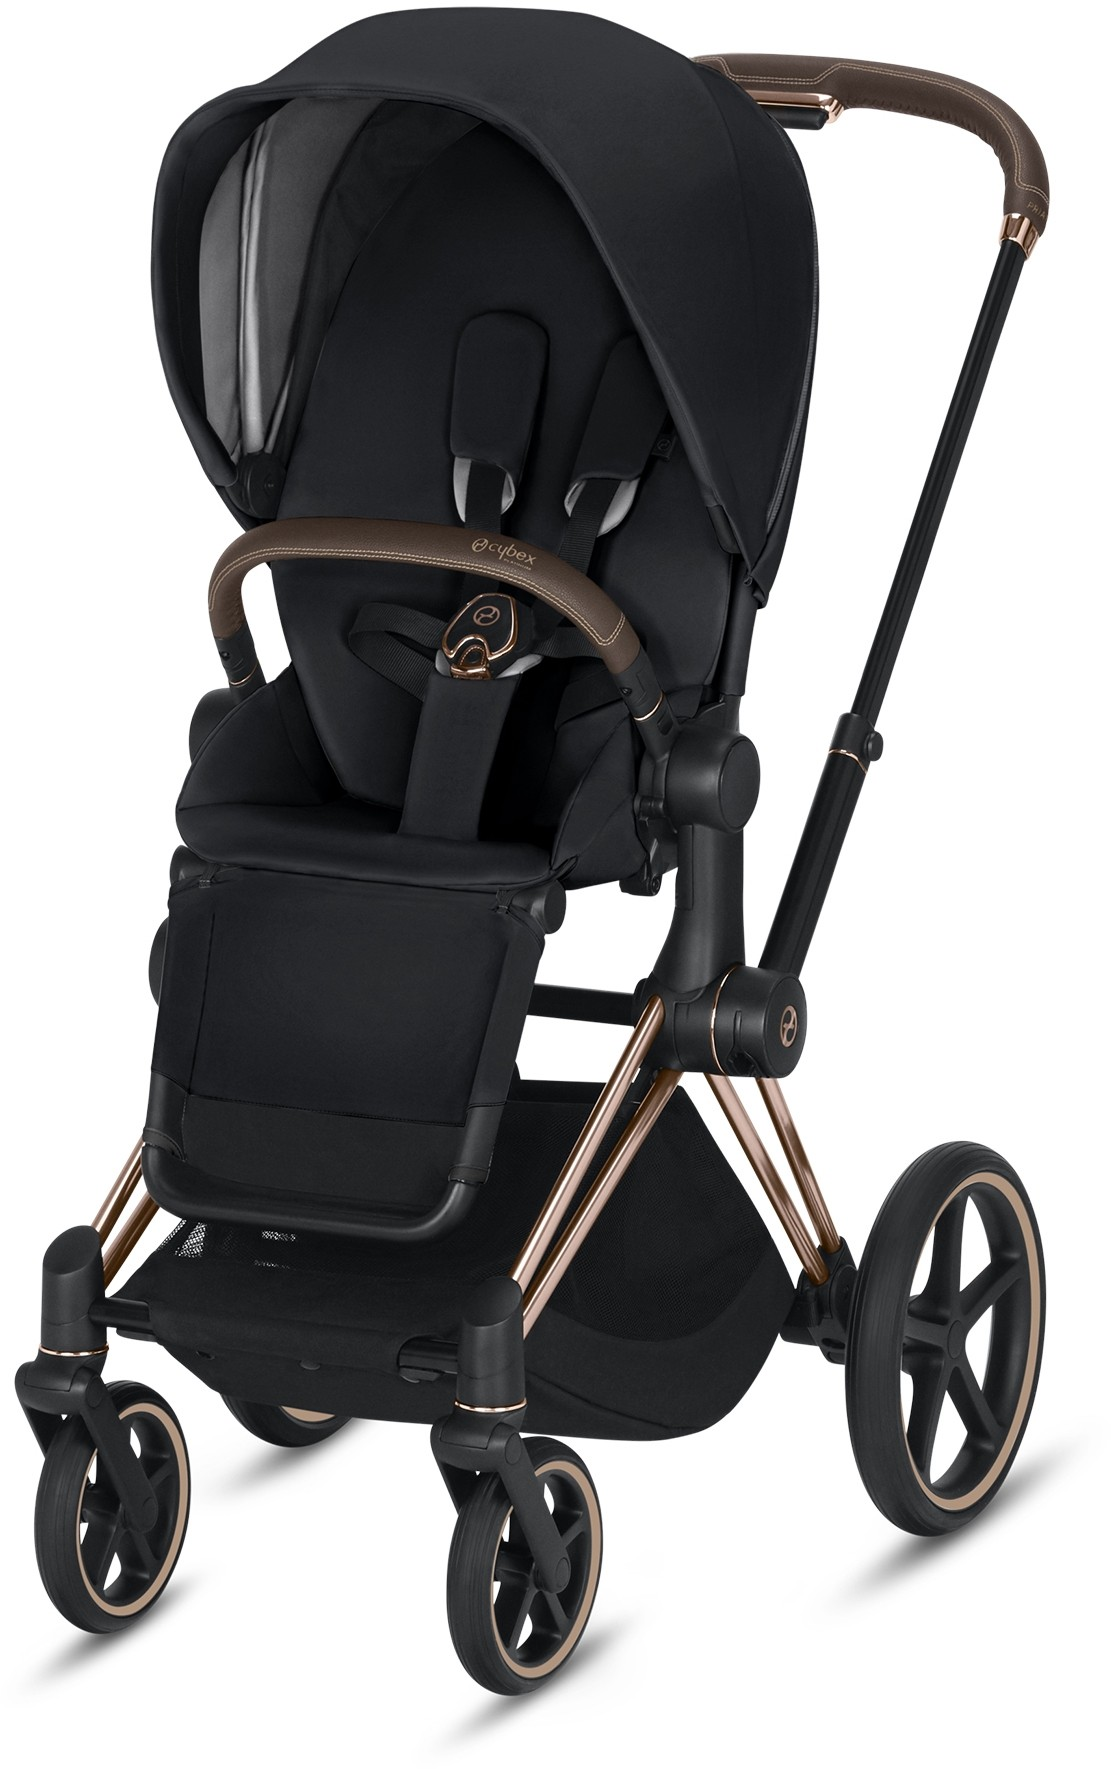 Cybex Priam 3 3 In 1 Travel System Rose Gold Frame Premium Black Seat